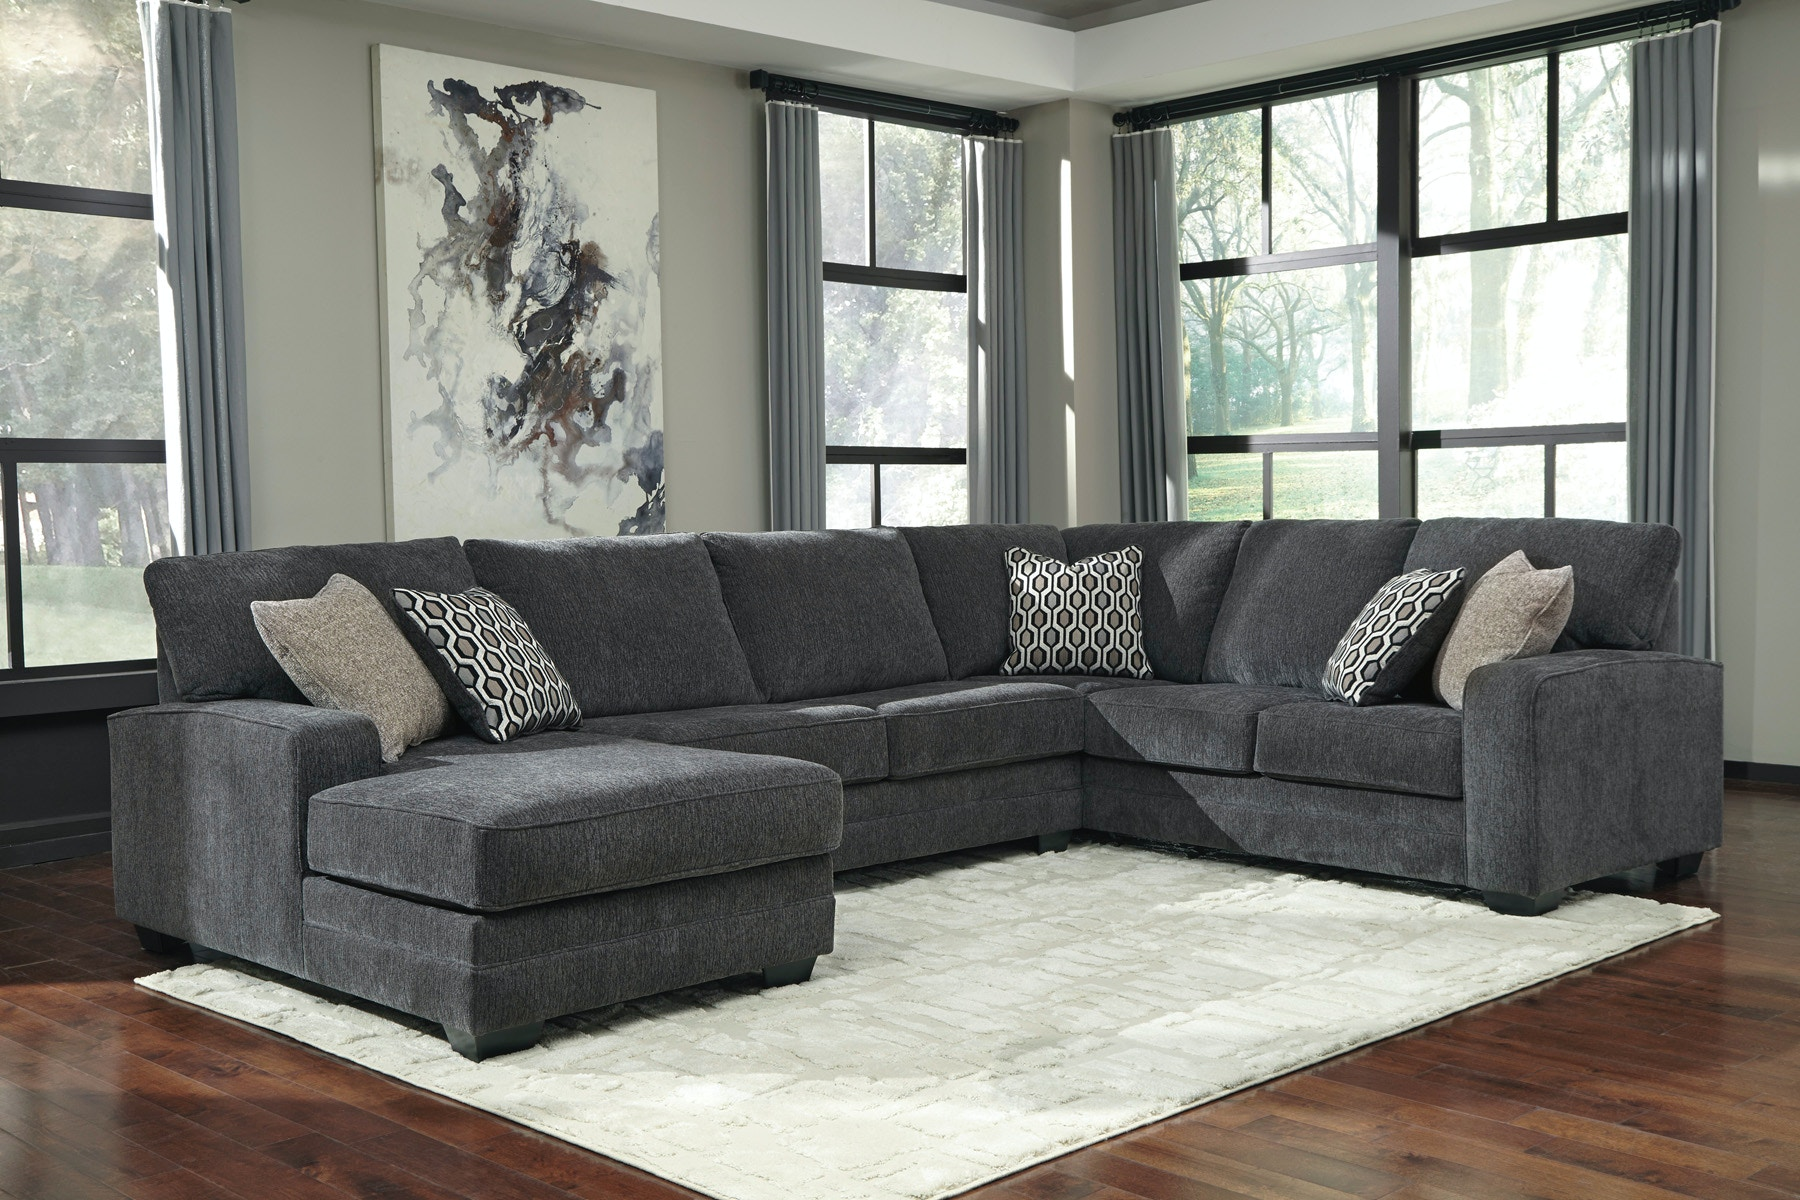 Signature Design By Ashley Tracling Left Chaise Sectional 973566